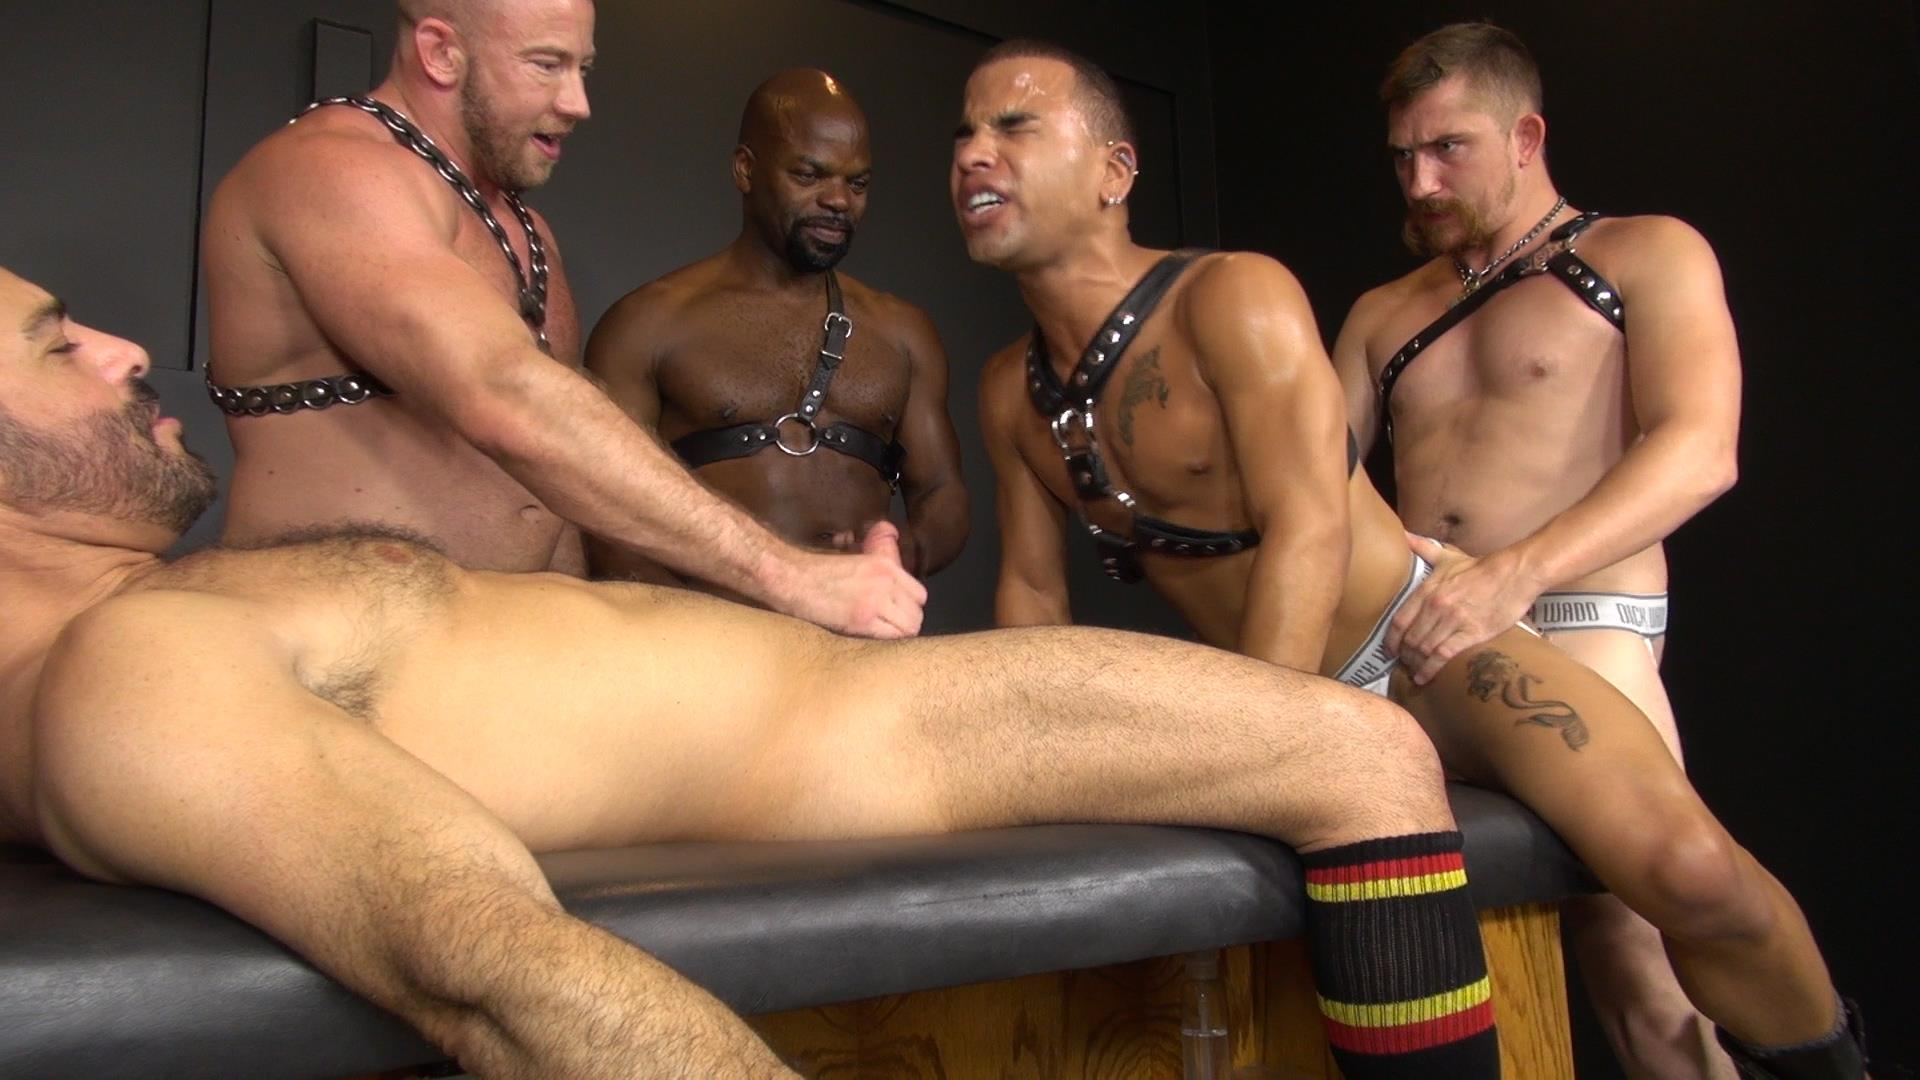 Interracial Gay Orgy 121